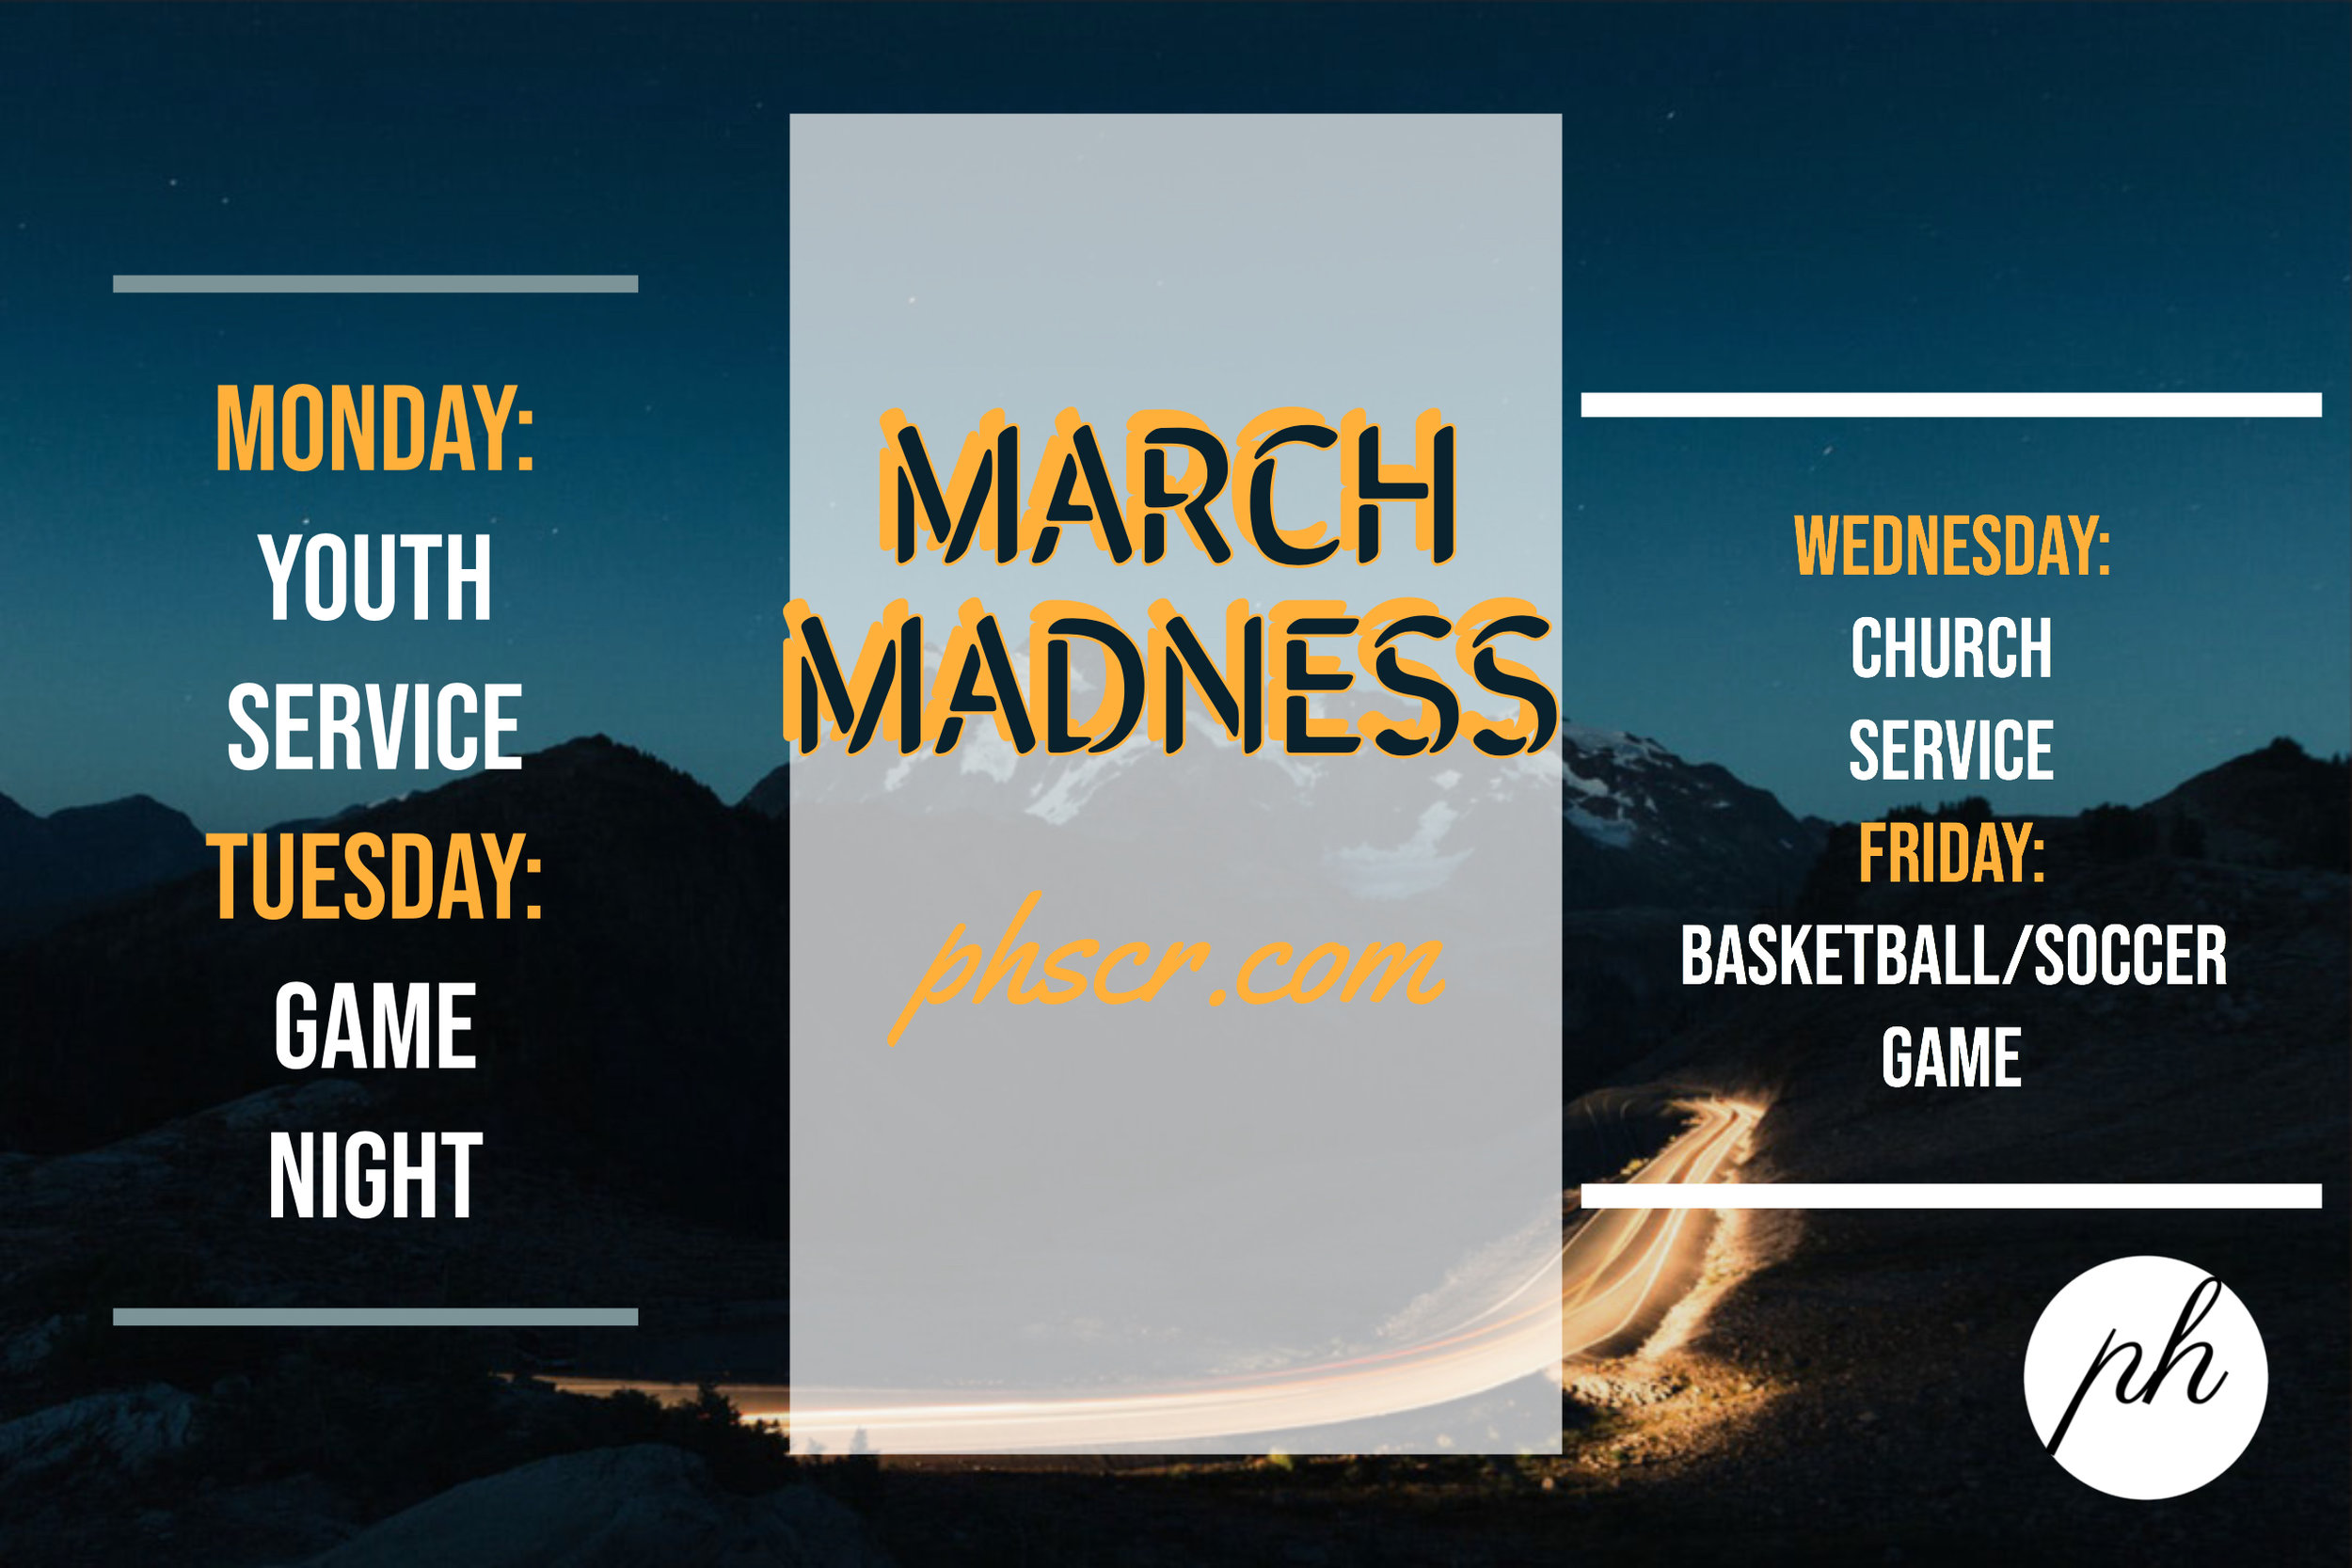 MARCH MADNESS — The Potter's House Scarborough